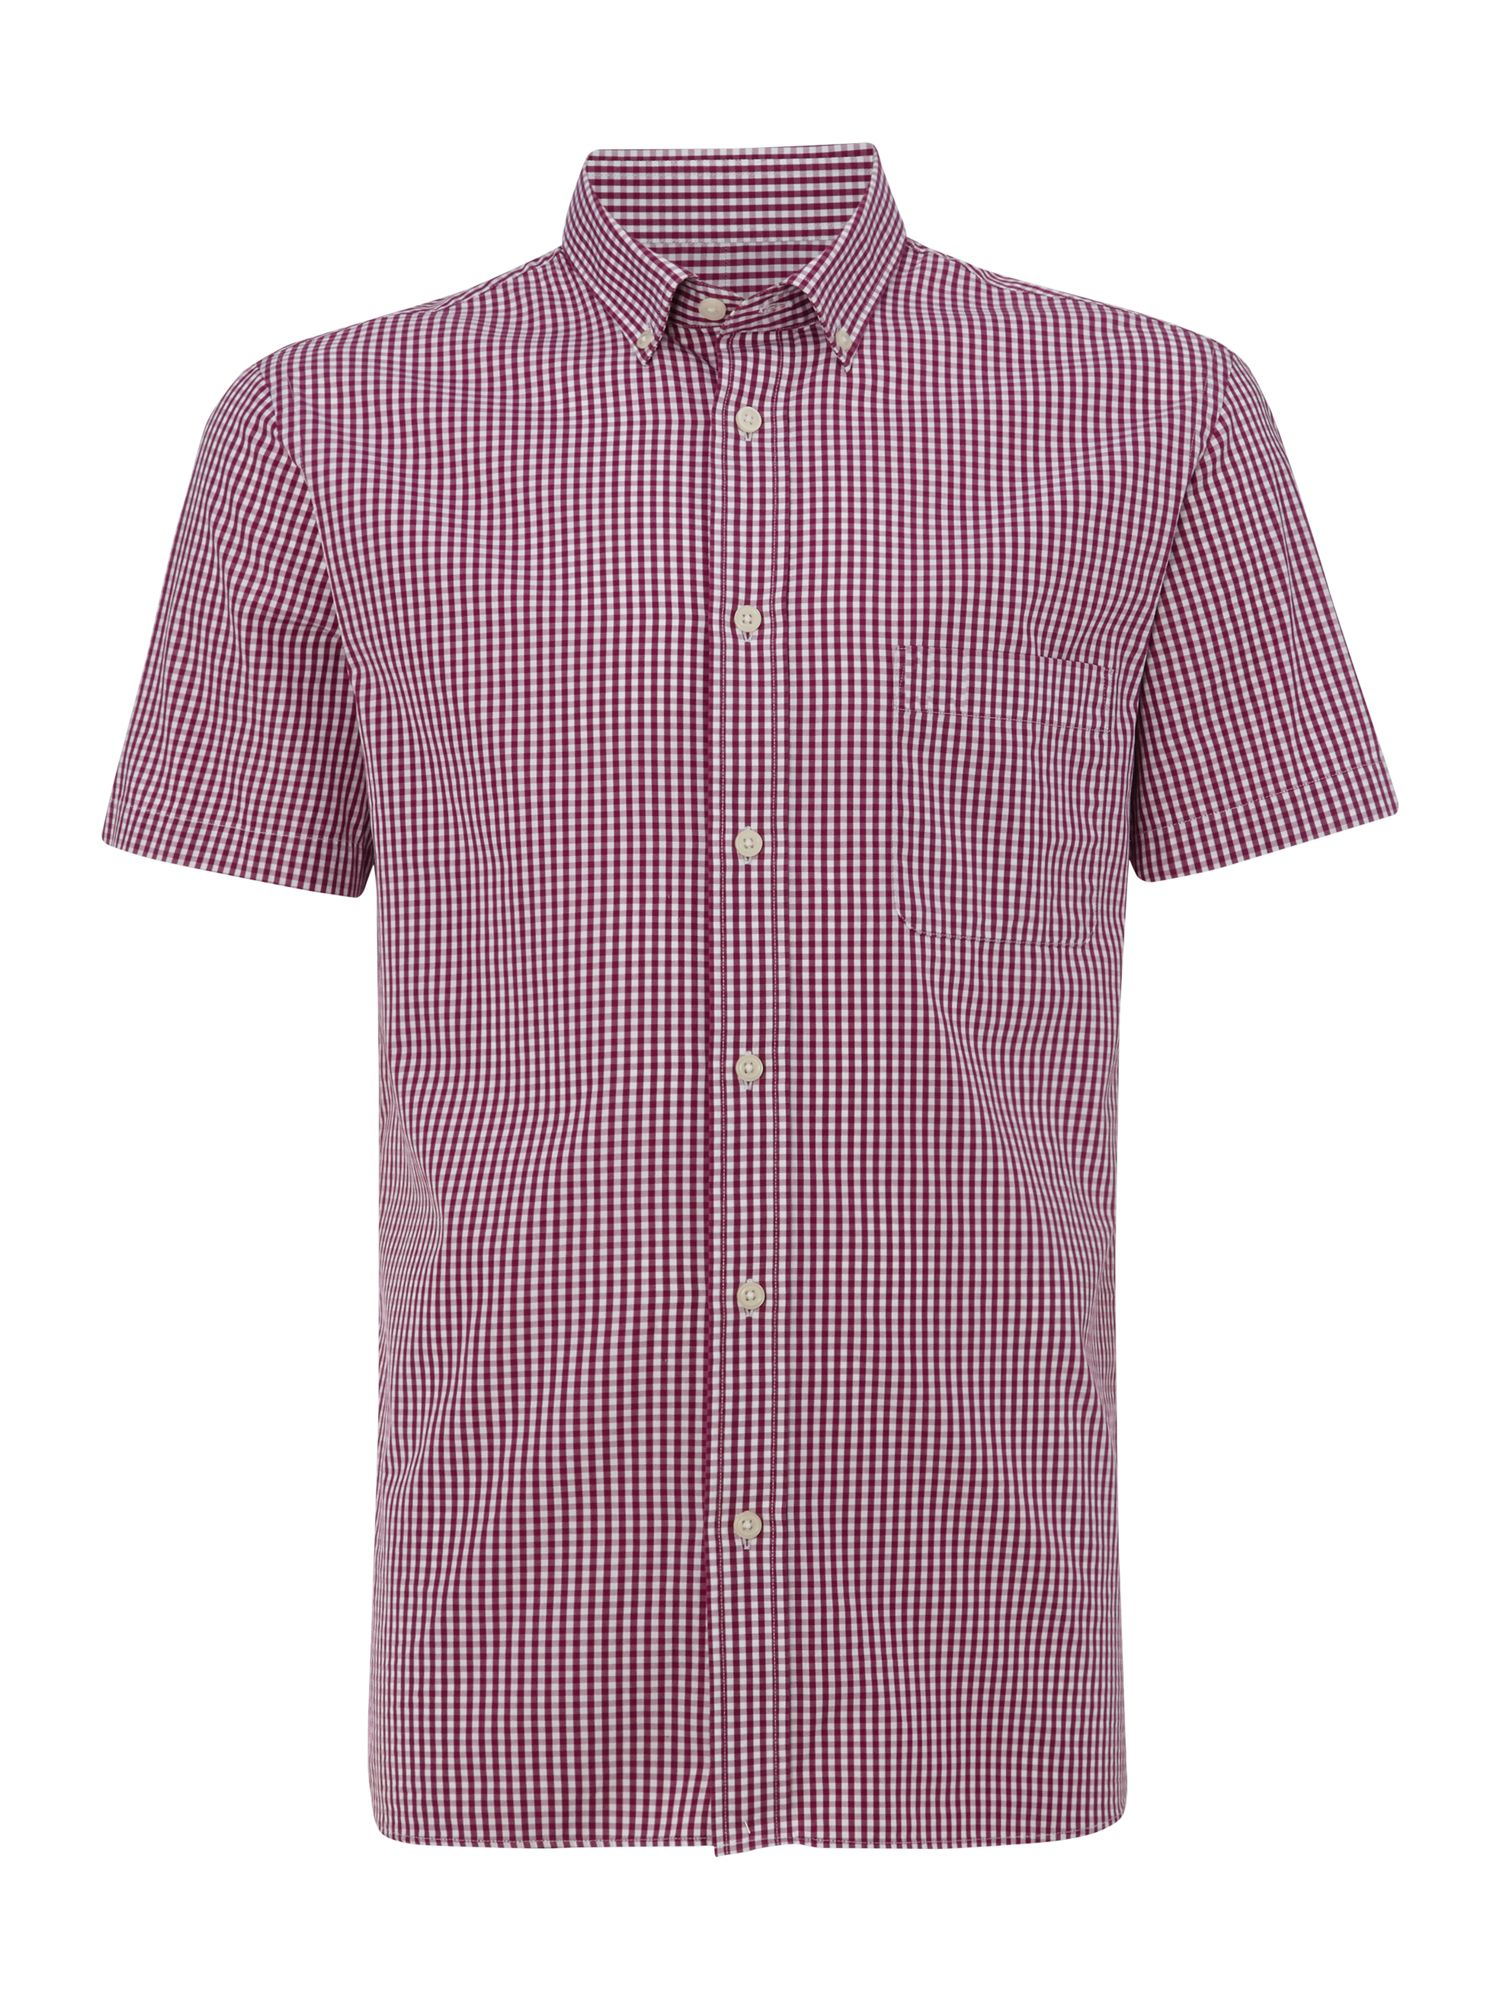 Gingham short sleeve classic collar shirt